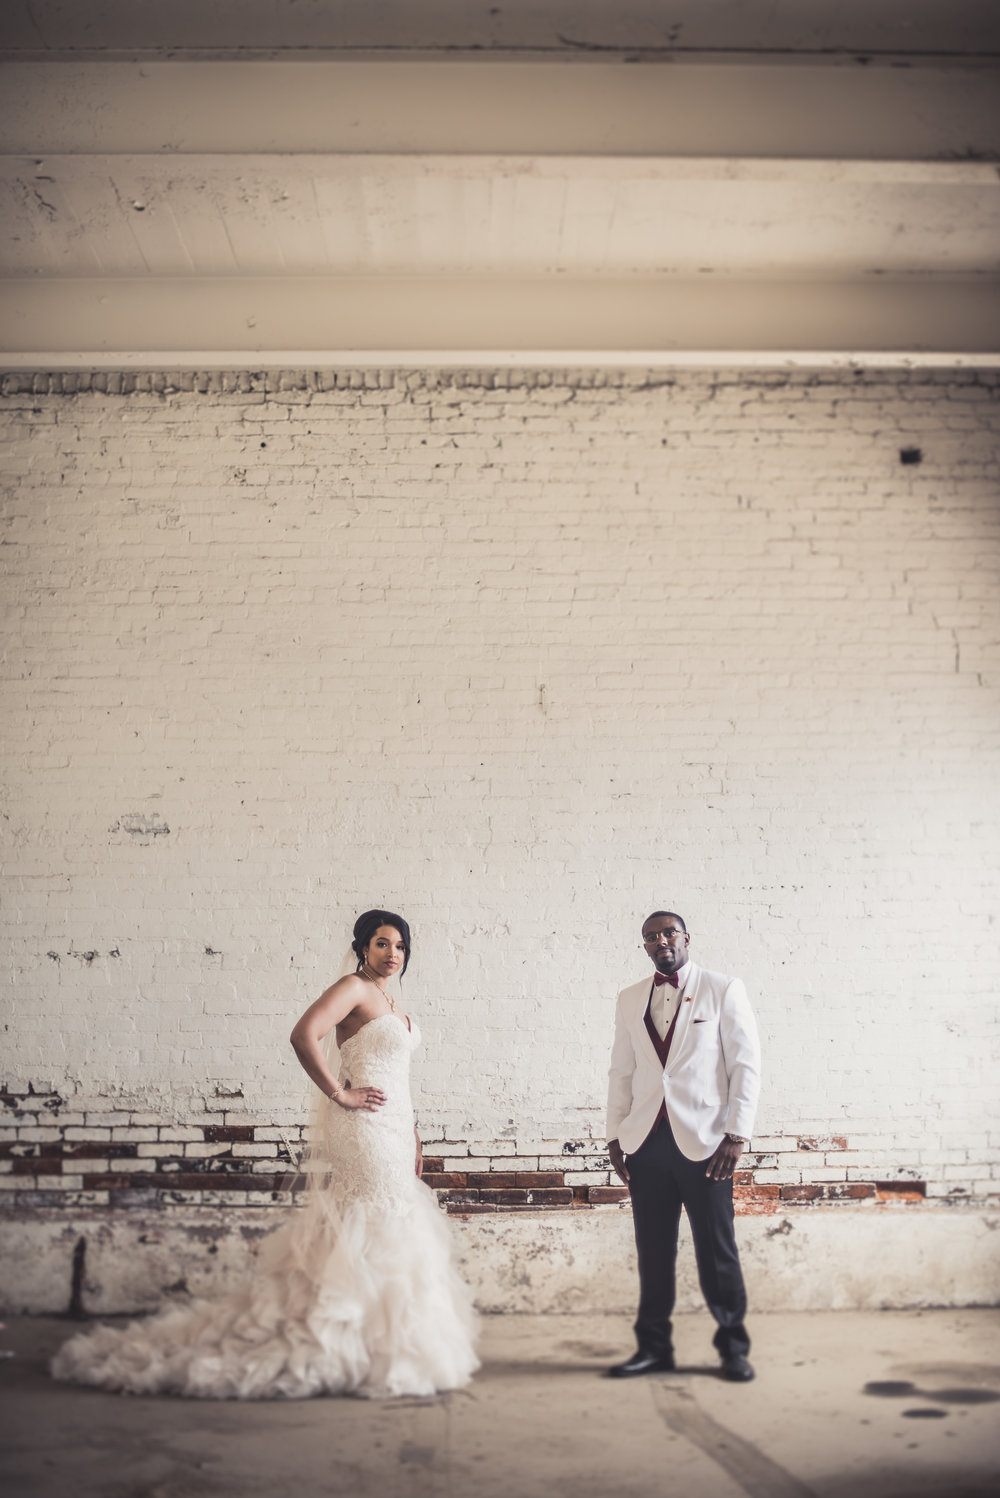 Burlington Iowa Wedding Midwest Photographer Melissa Cervantes _ Chantelle and Isaiah 320c.jpg